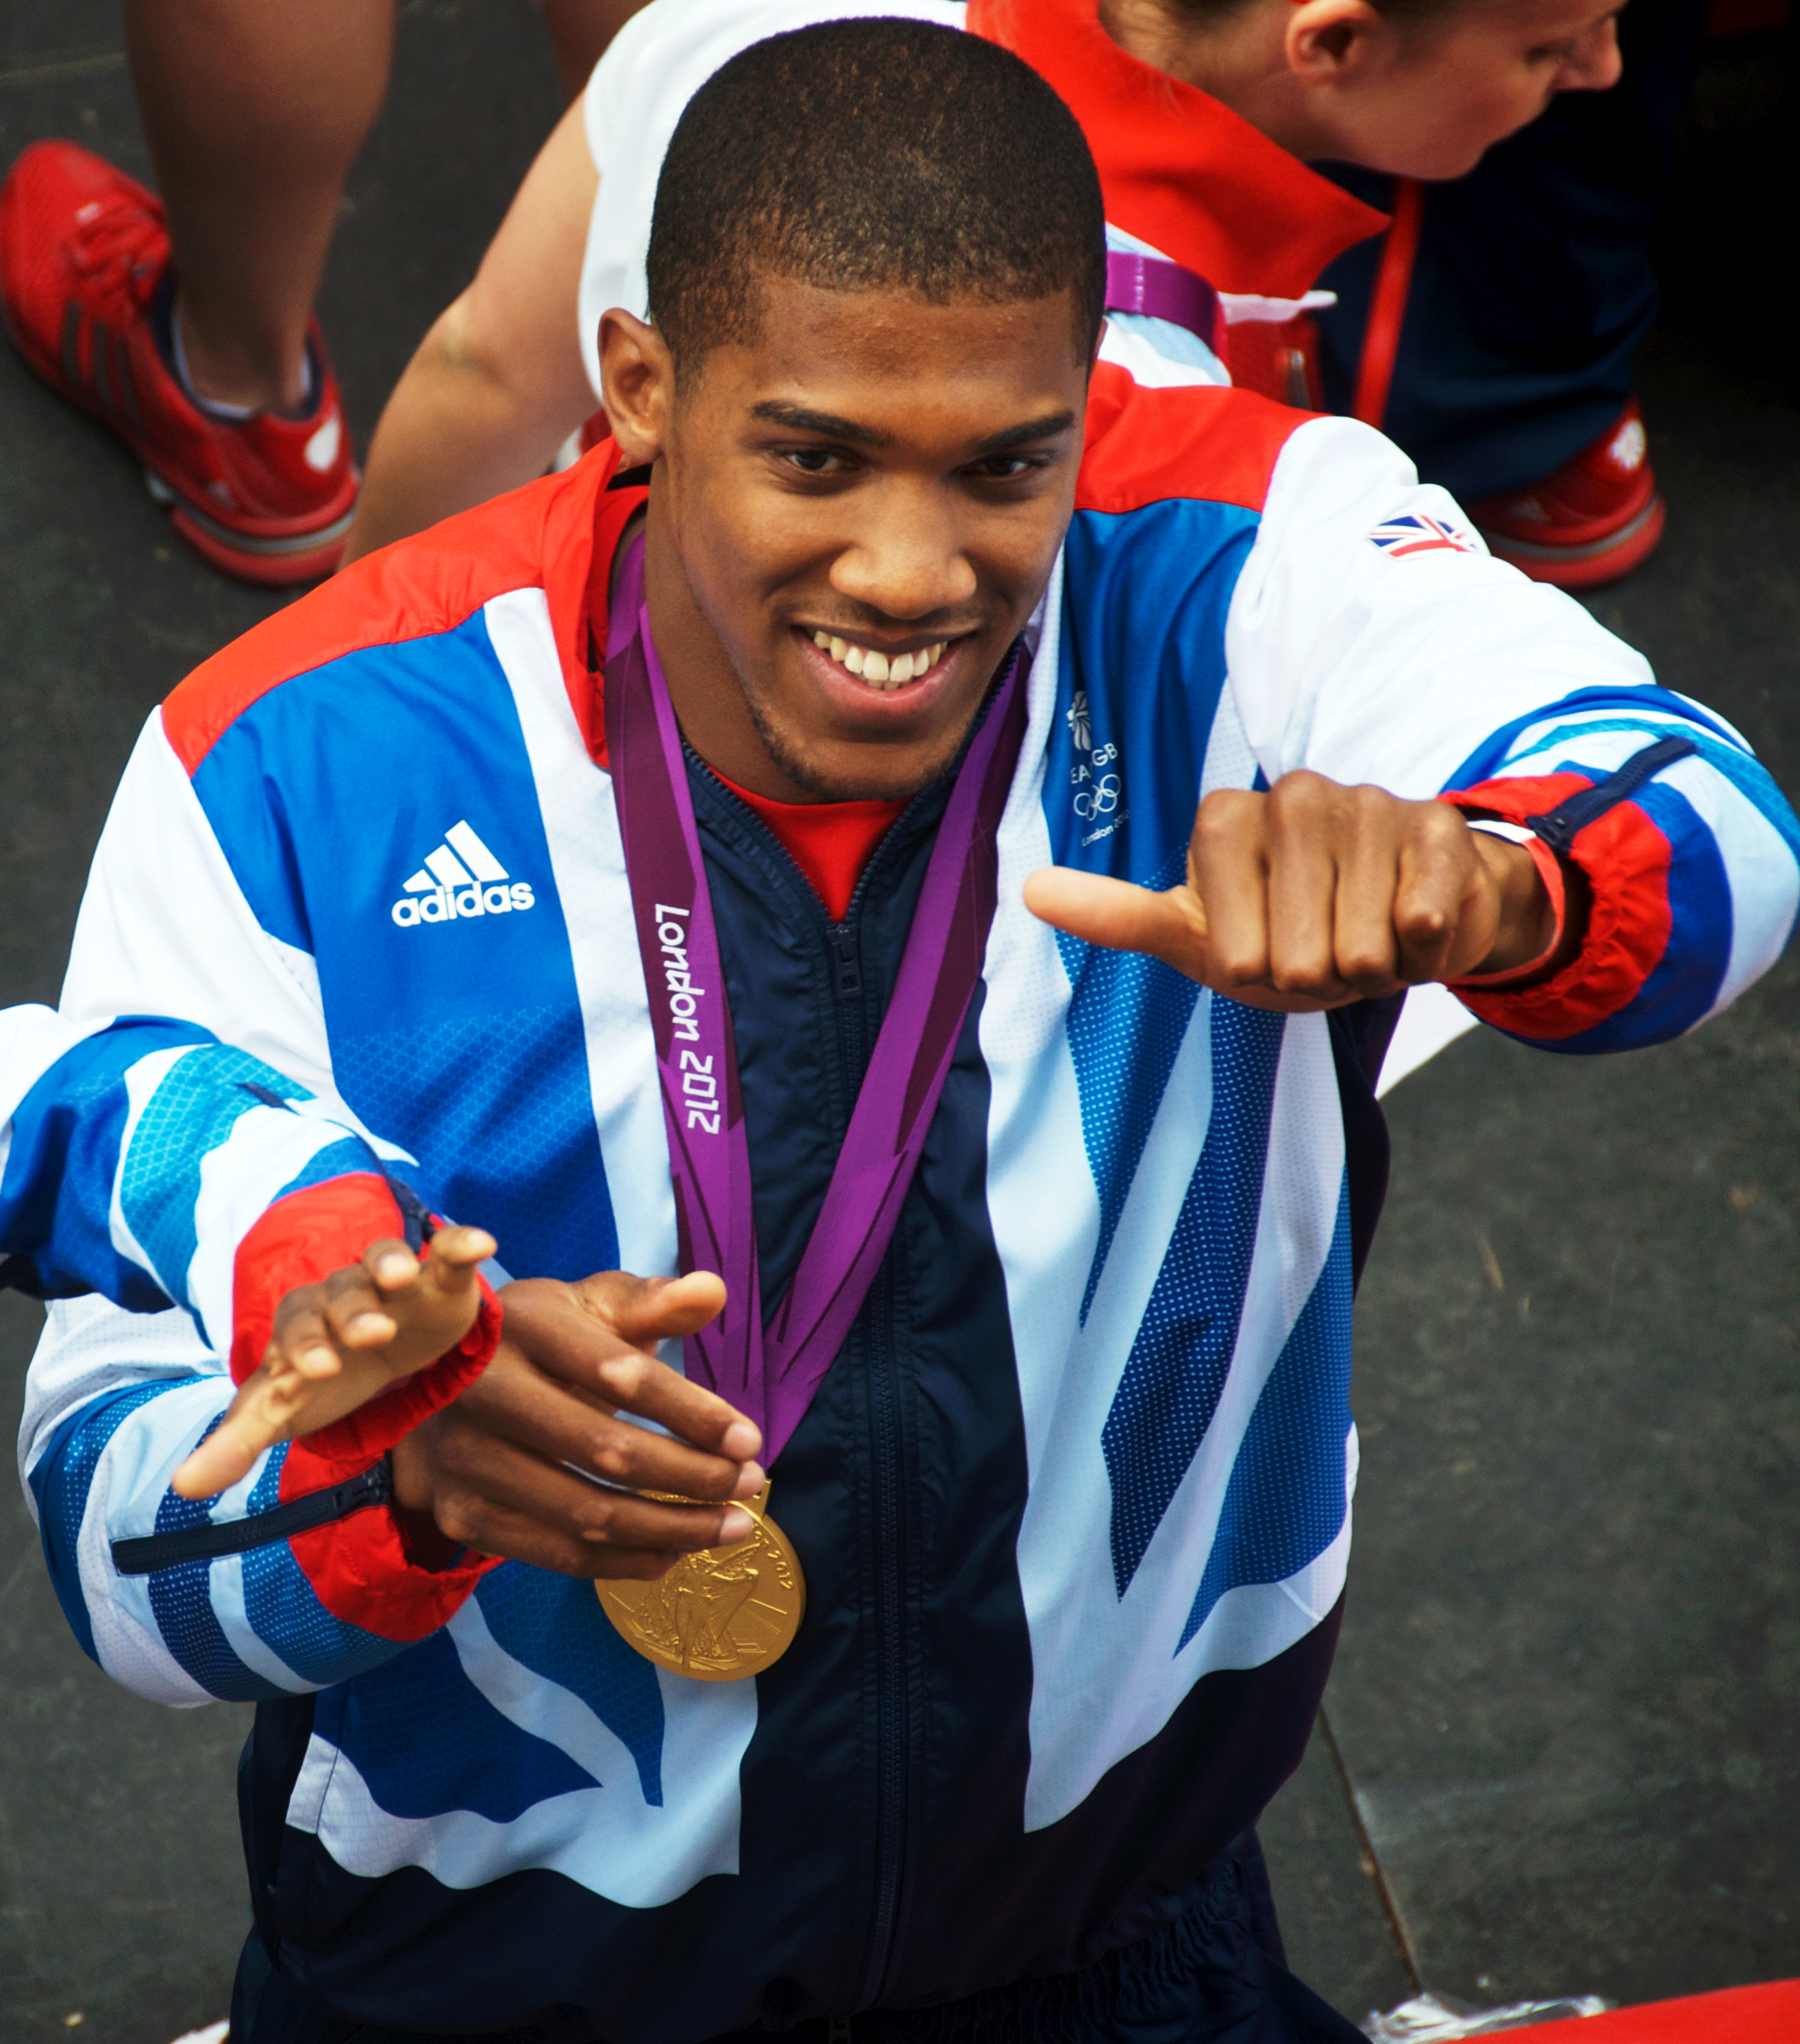 Just how good is Anthony Joshua?